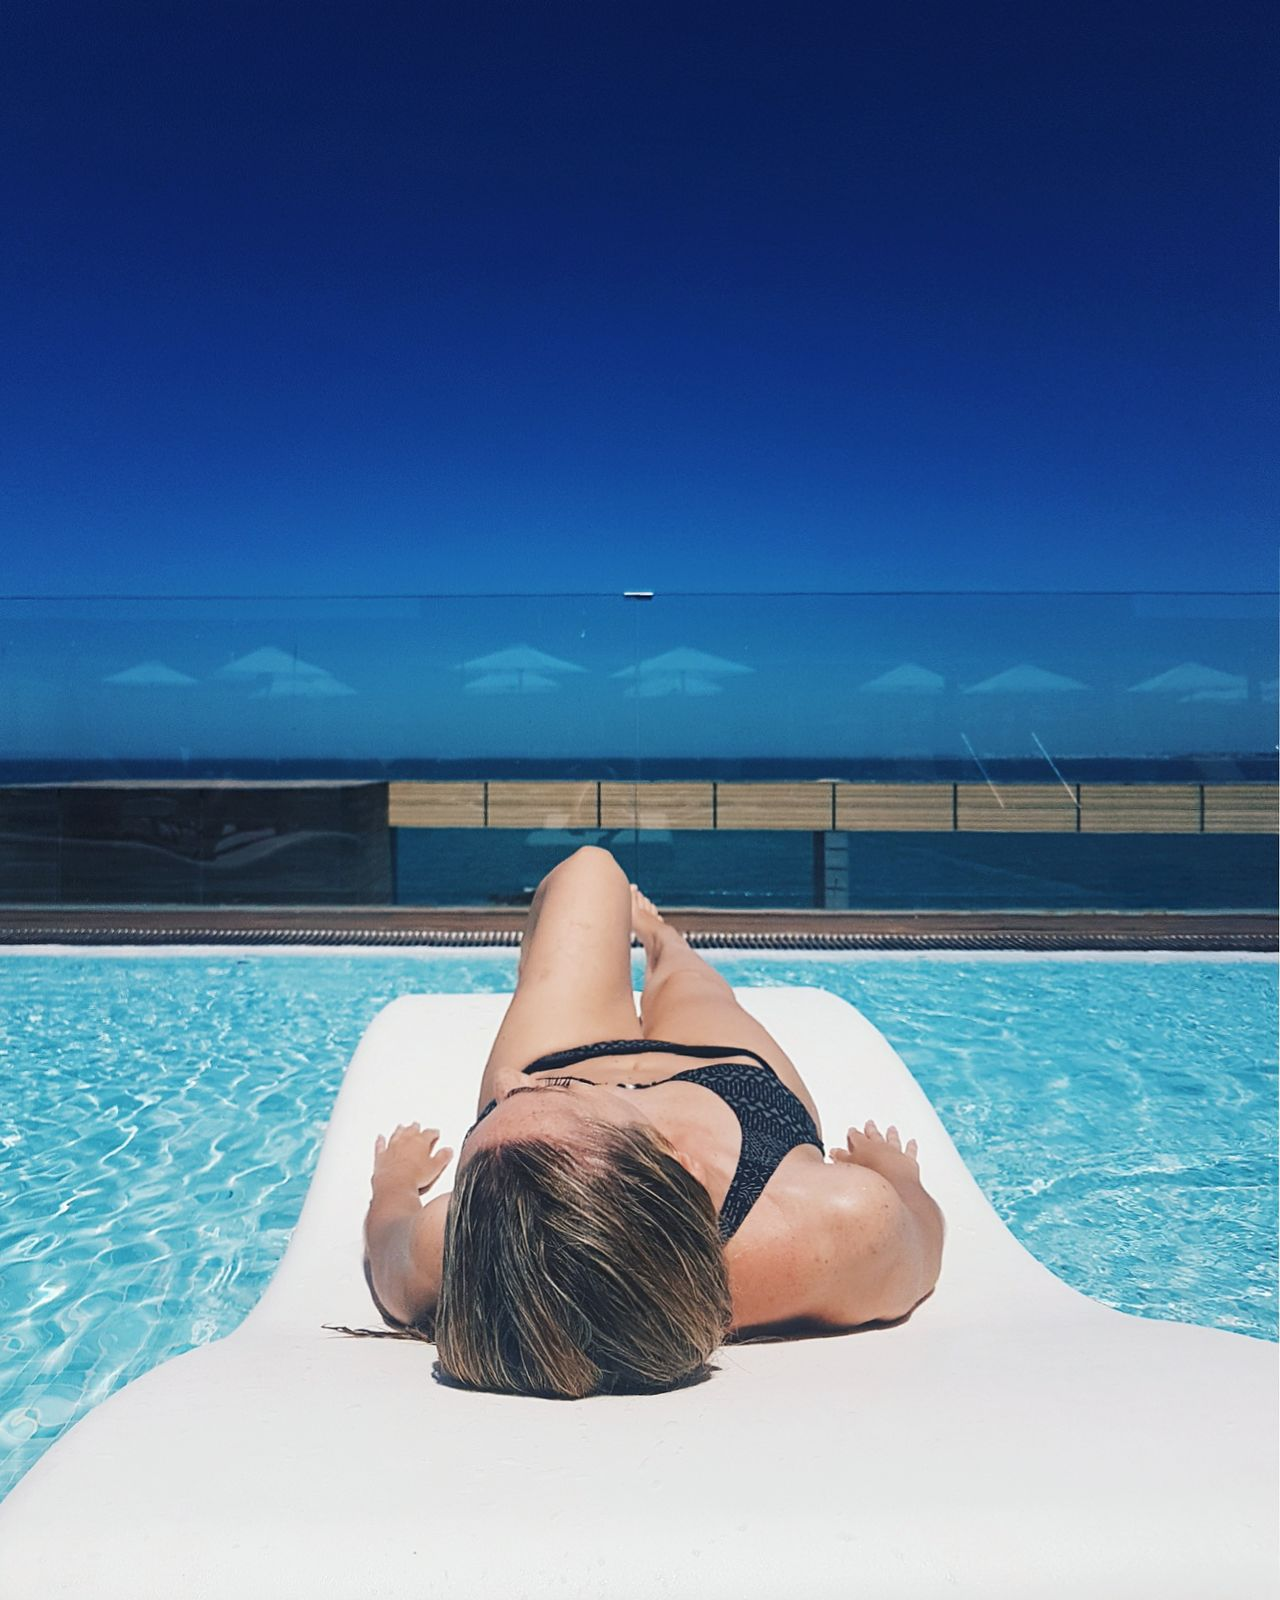 Bikini Swimming Pool One Woman Only Only Women Water Vacations Swimwear Summer Beauty One Person Adults Only Adult Sunbathing Young Adult Beautiful People Fashion Leisure Activity One Young Woman Only People Young Women Live For The Story